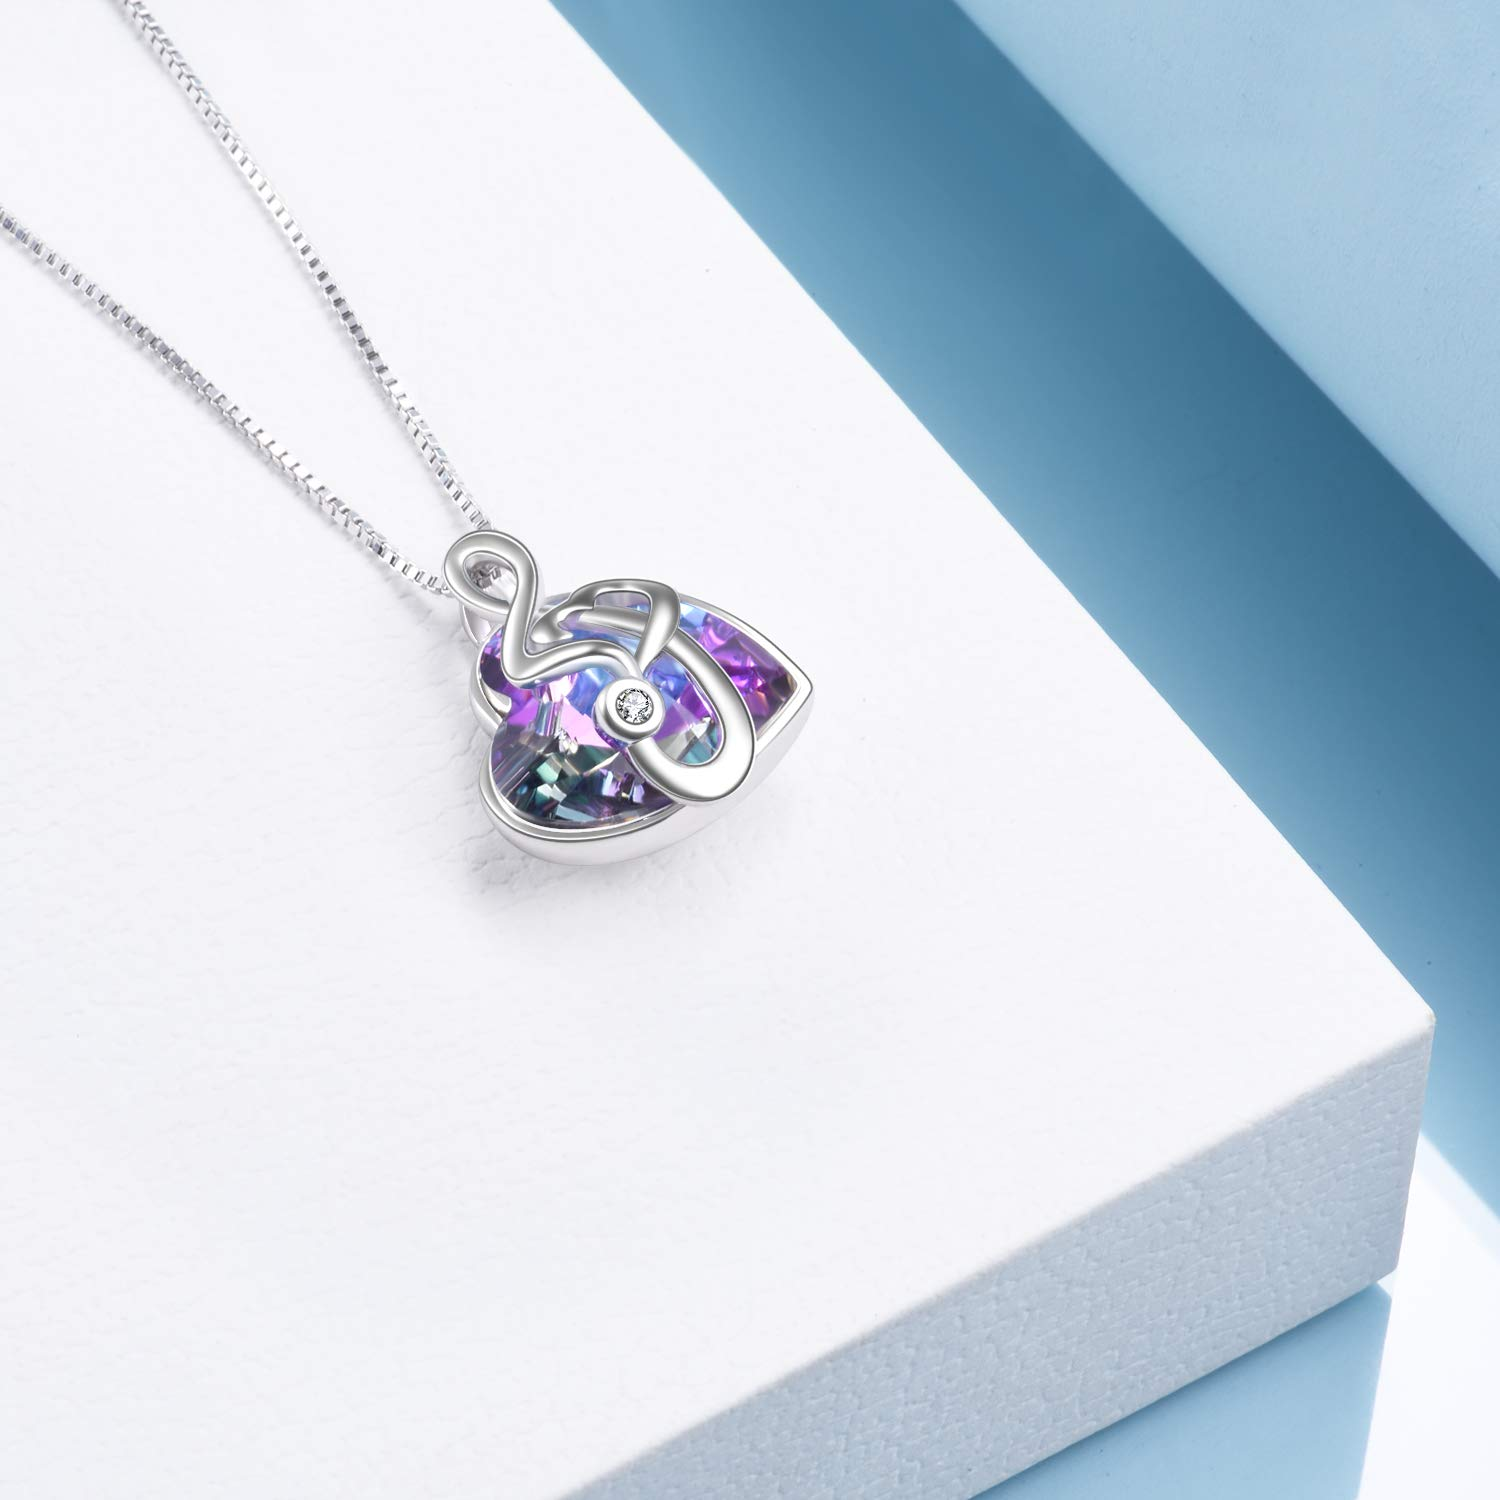 AOBOCO Dance with Me Purple Music Note Necklace for Women My Girls Heart Shaped Vitrail Color Changing Crystal Pendant with Swarovski Element